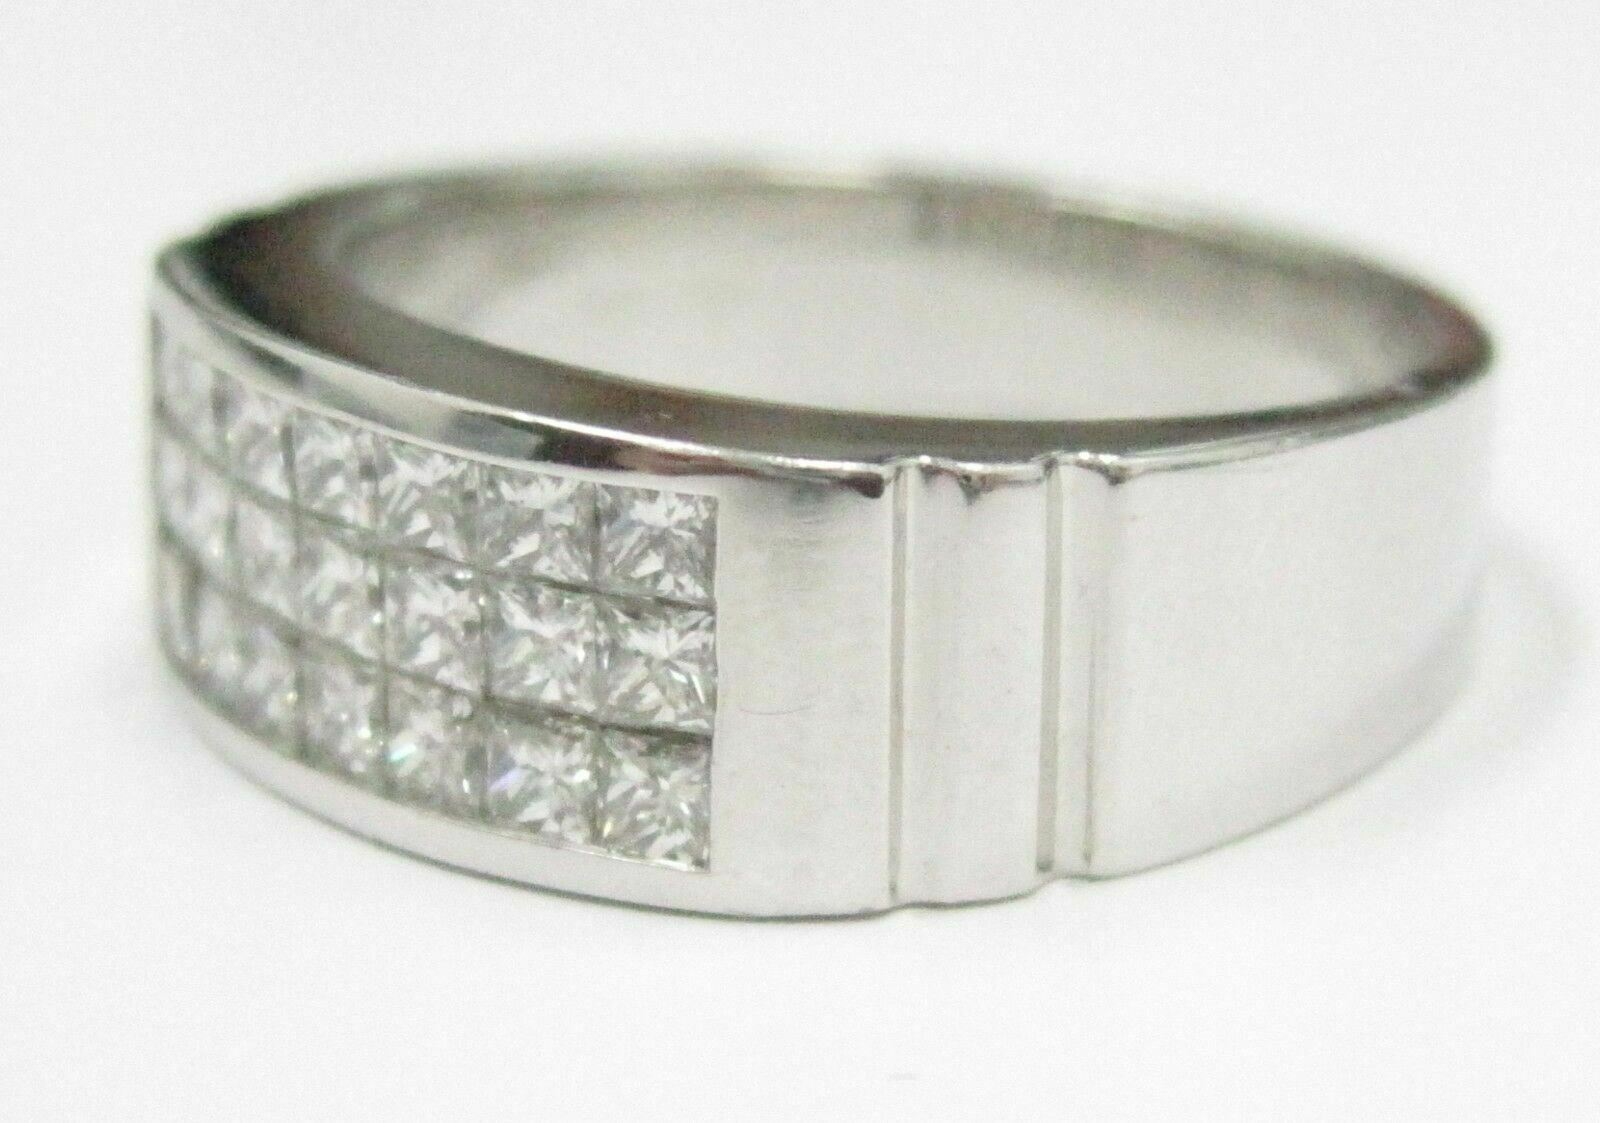 1.35 TCW Men's 3 Row Princess Cut Diamond Ring/Band Size 10 14kt White Gold